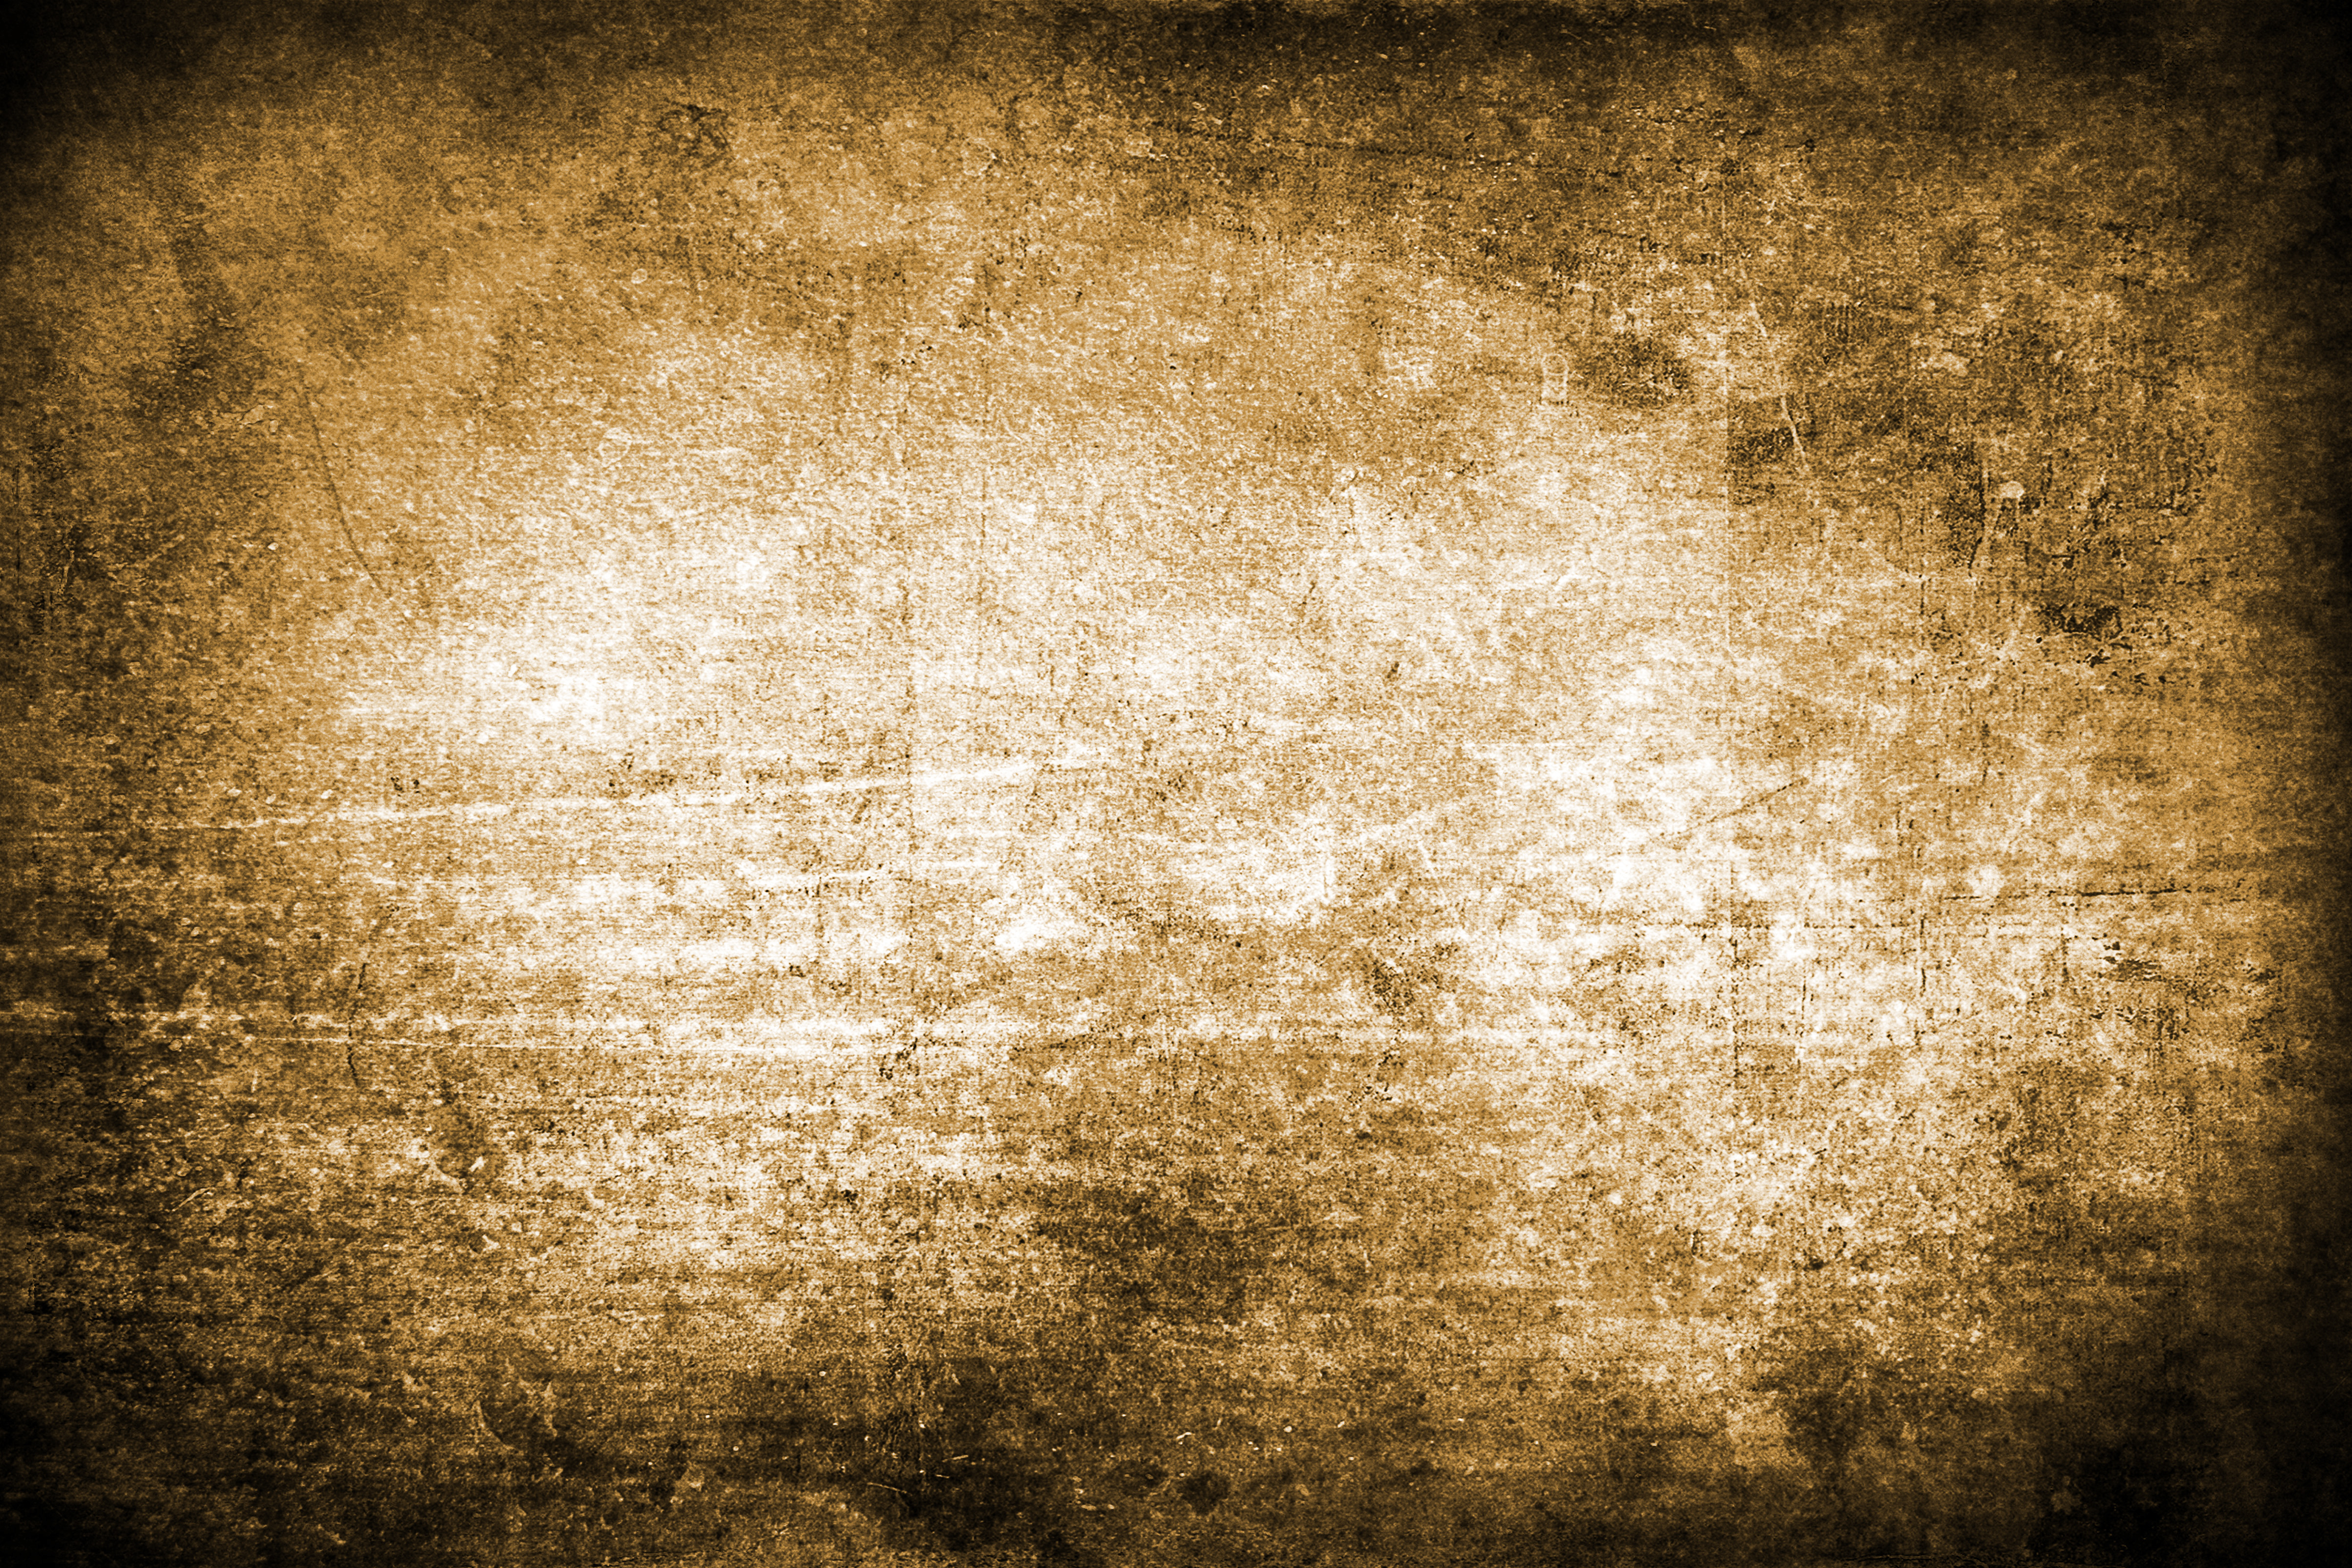 grunge textures together and then saturating with a sepia hue 4800x3200